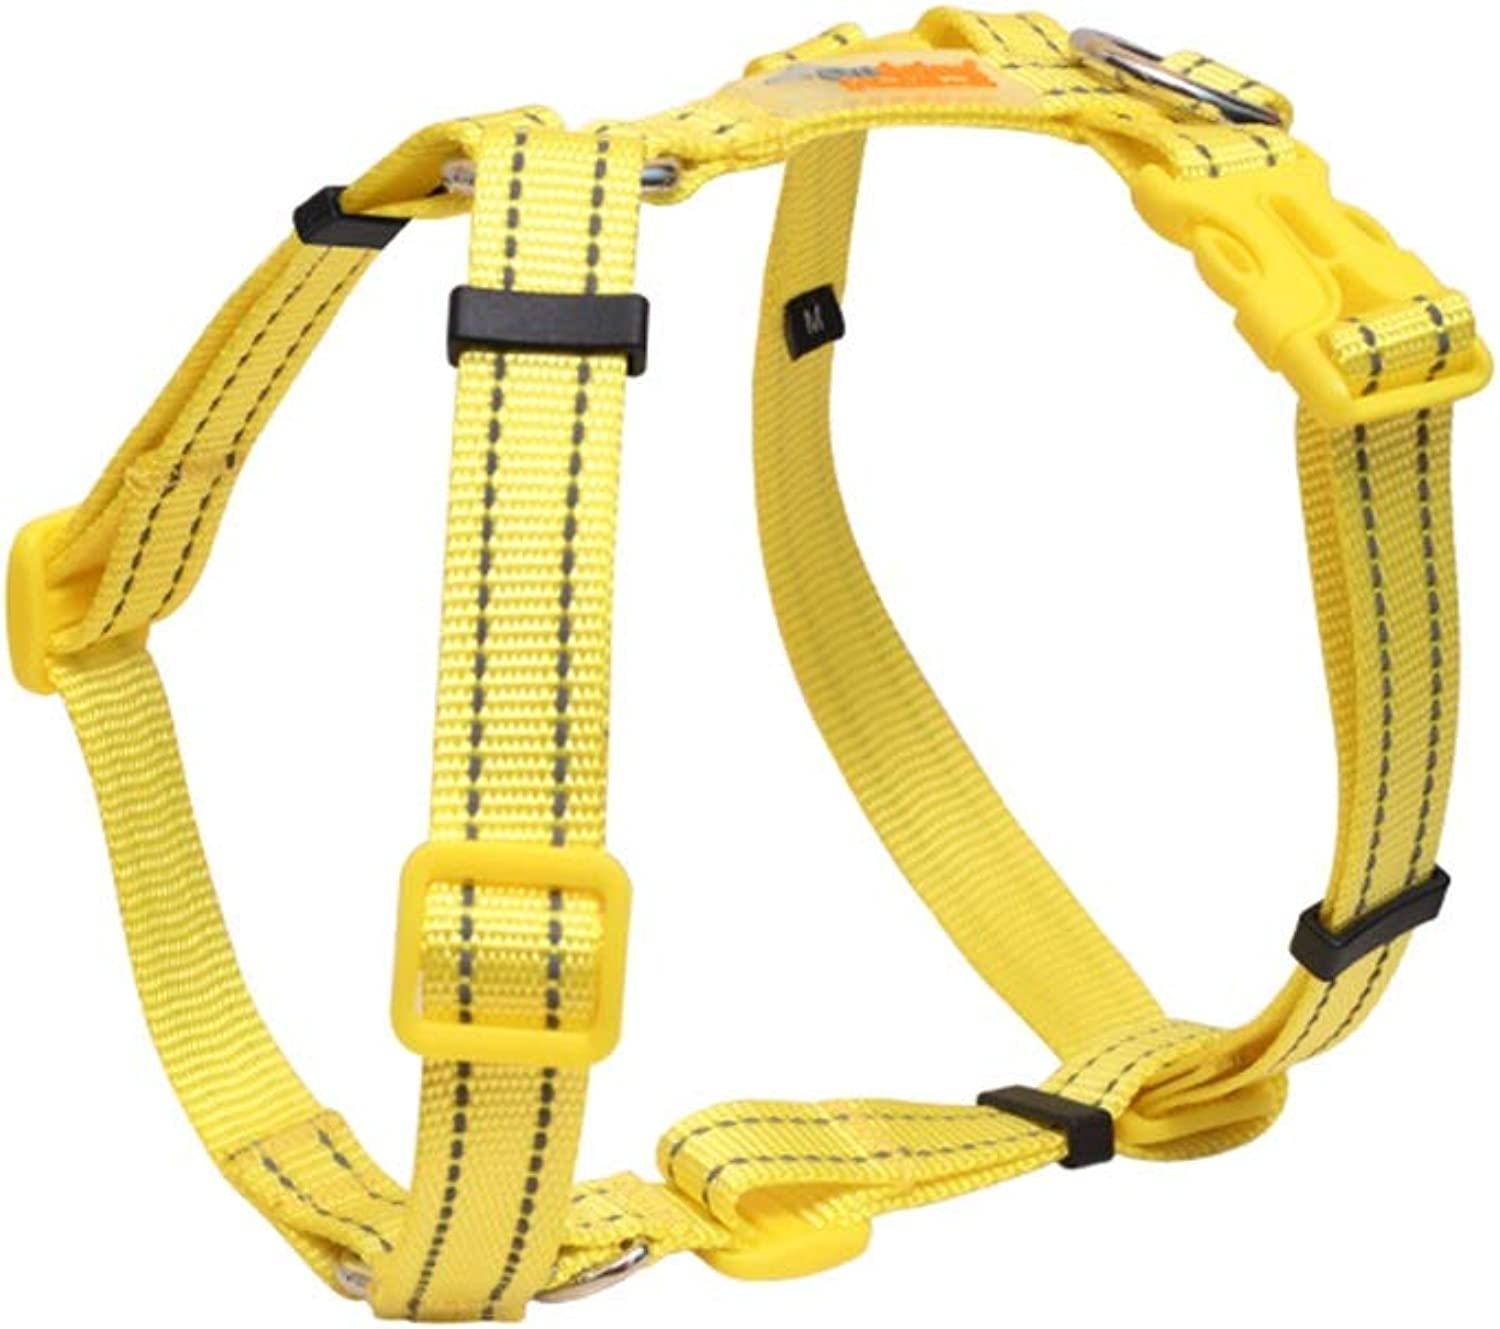 Dog Vest Harness, Chest Strap Traction Leash Outdoor Training Walk Run Adjustable Neck Chest Safety Buffer Chain for Puppy Small Medium Teddy (color   Yellow, Size   L(4260cm))